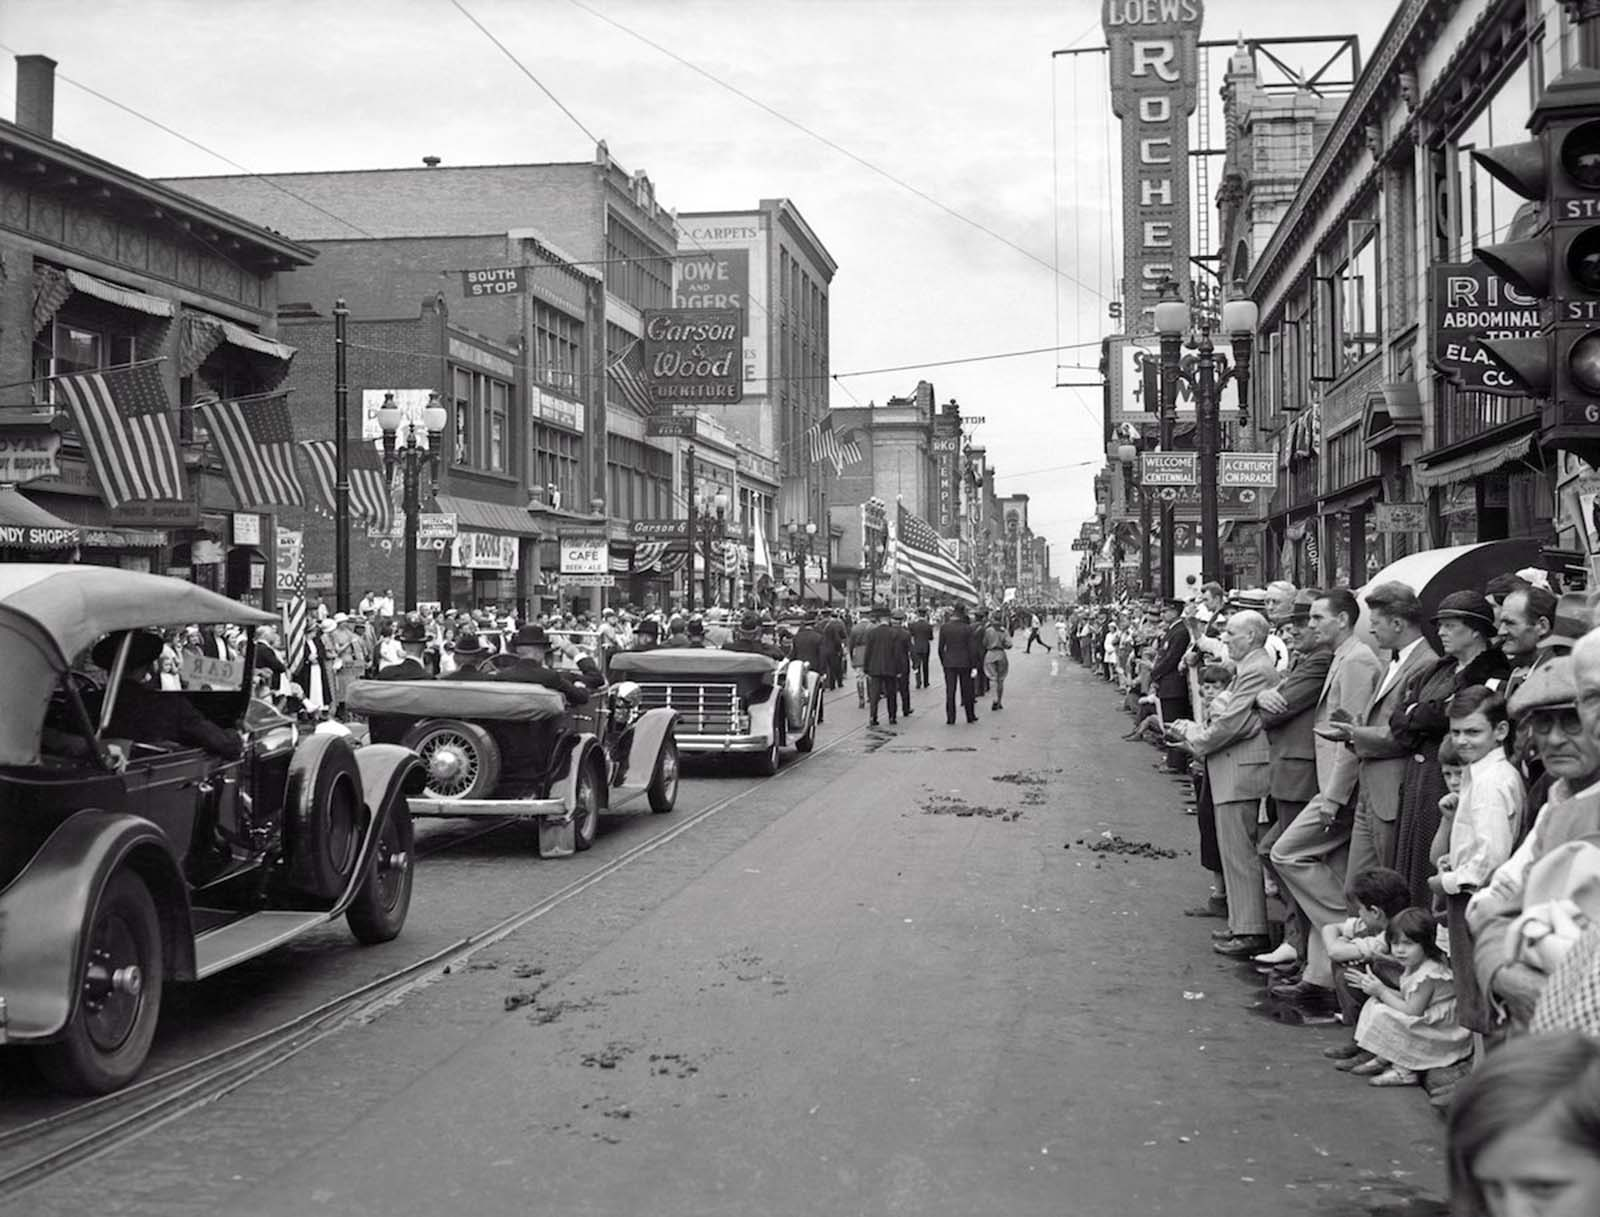 Rochester, New York — The Grand Army of the Republic Civil War Veterans join a parade down main street during Rochester's centennial. 1934.